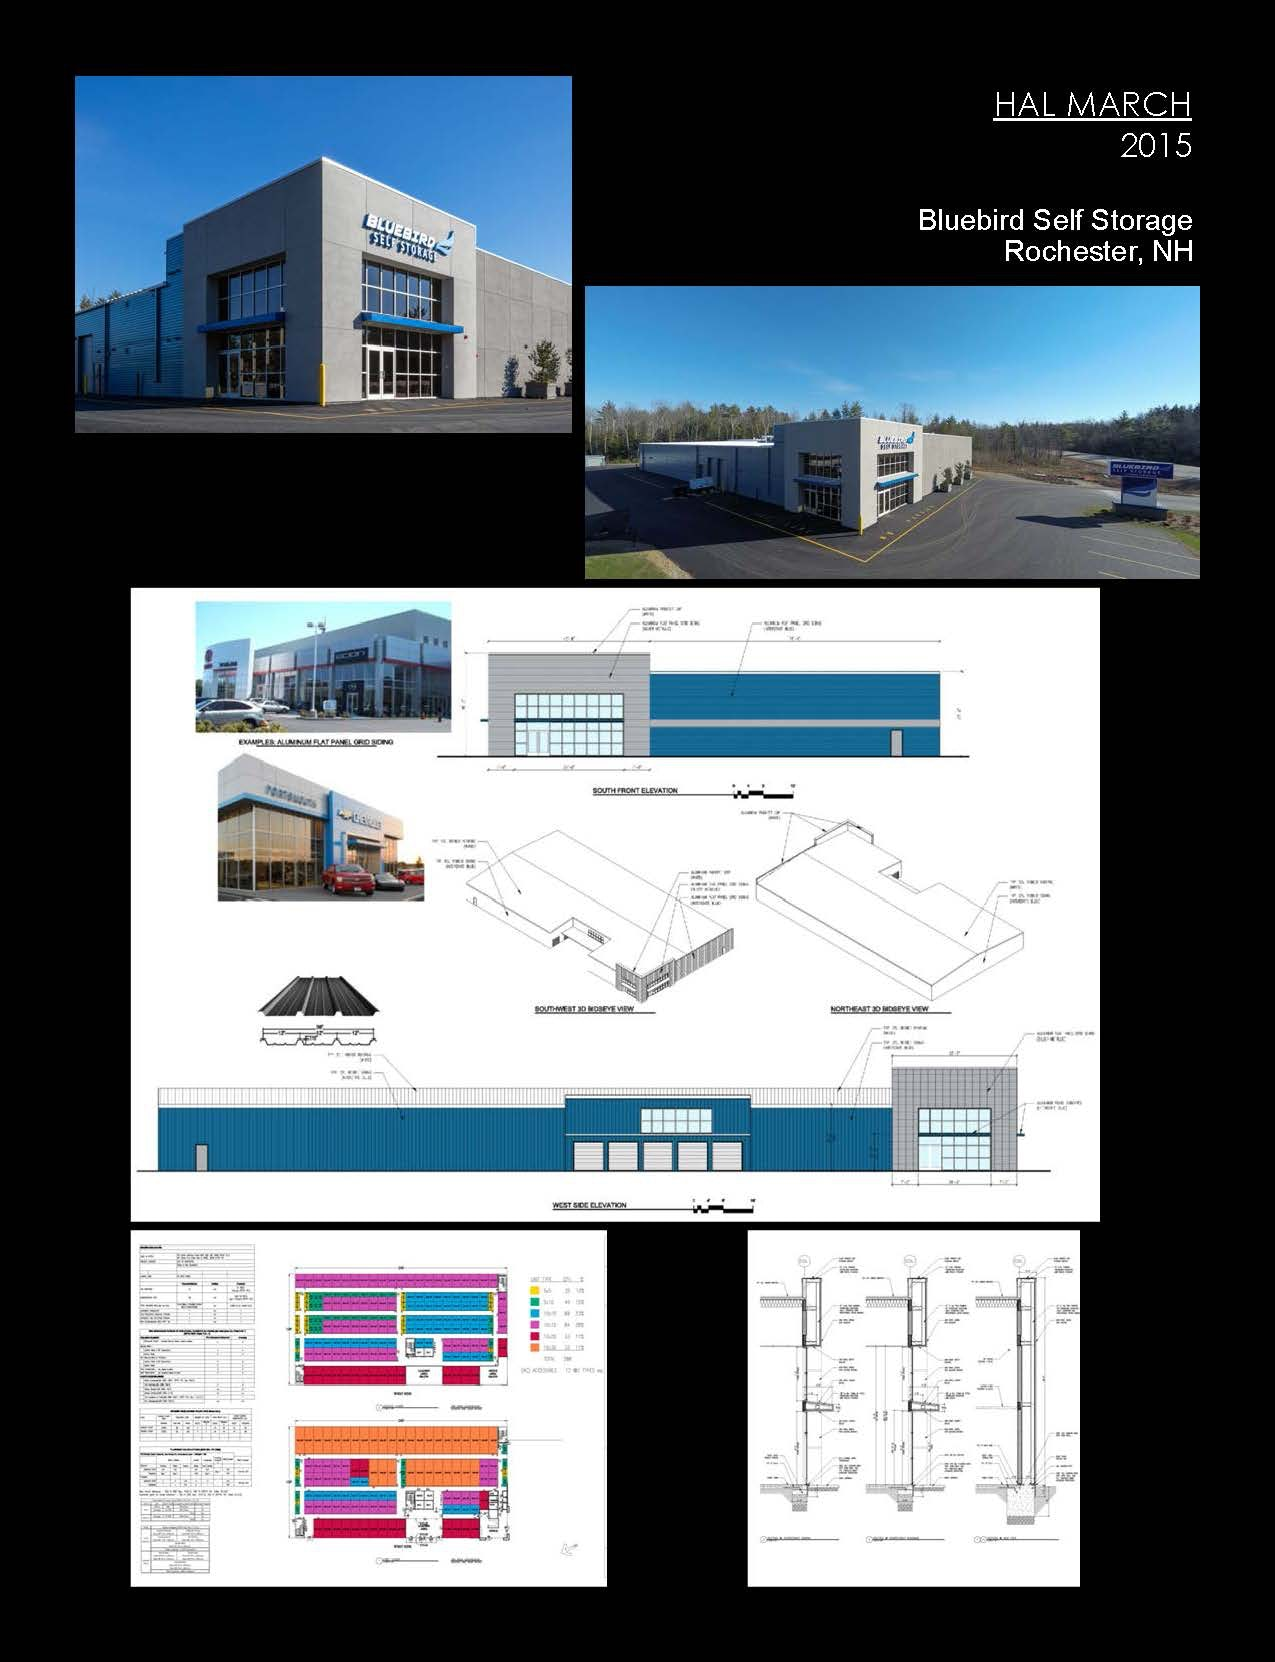 2015 Bluebird Self-Storage  sc 1 st  Archinect & 2015 Bluebird Self-Storage | Hal March | Archinect